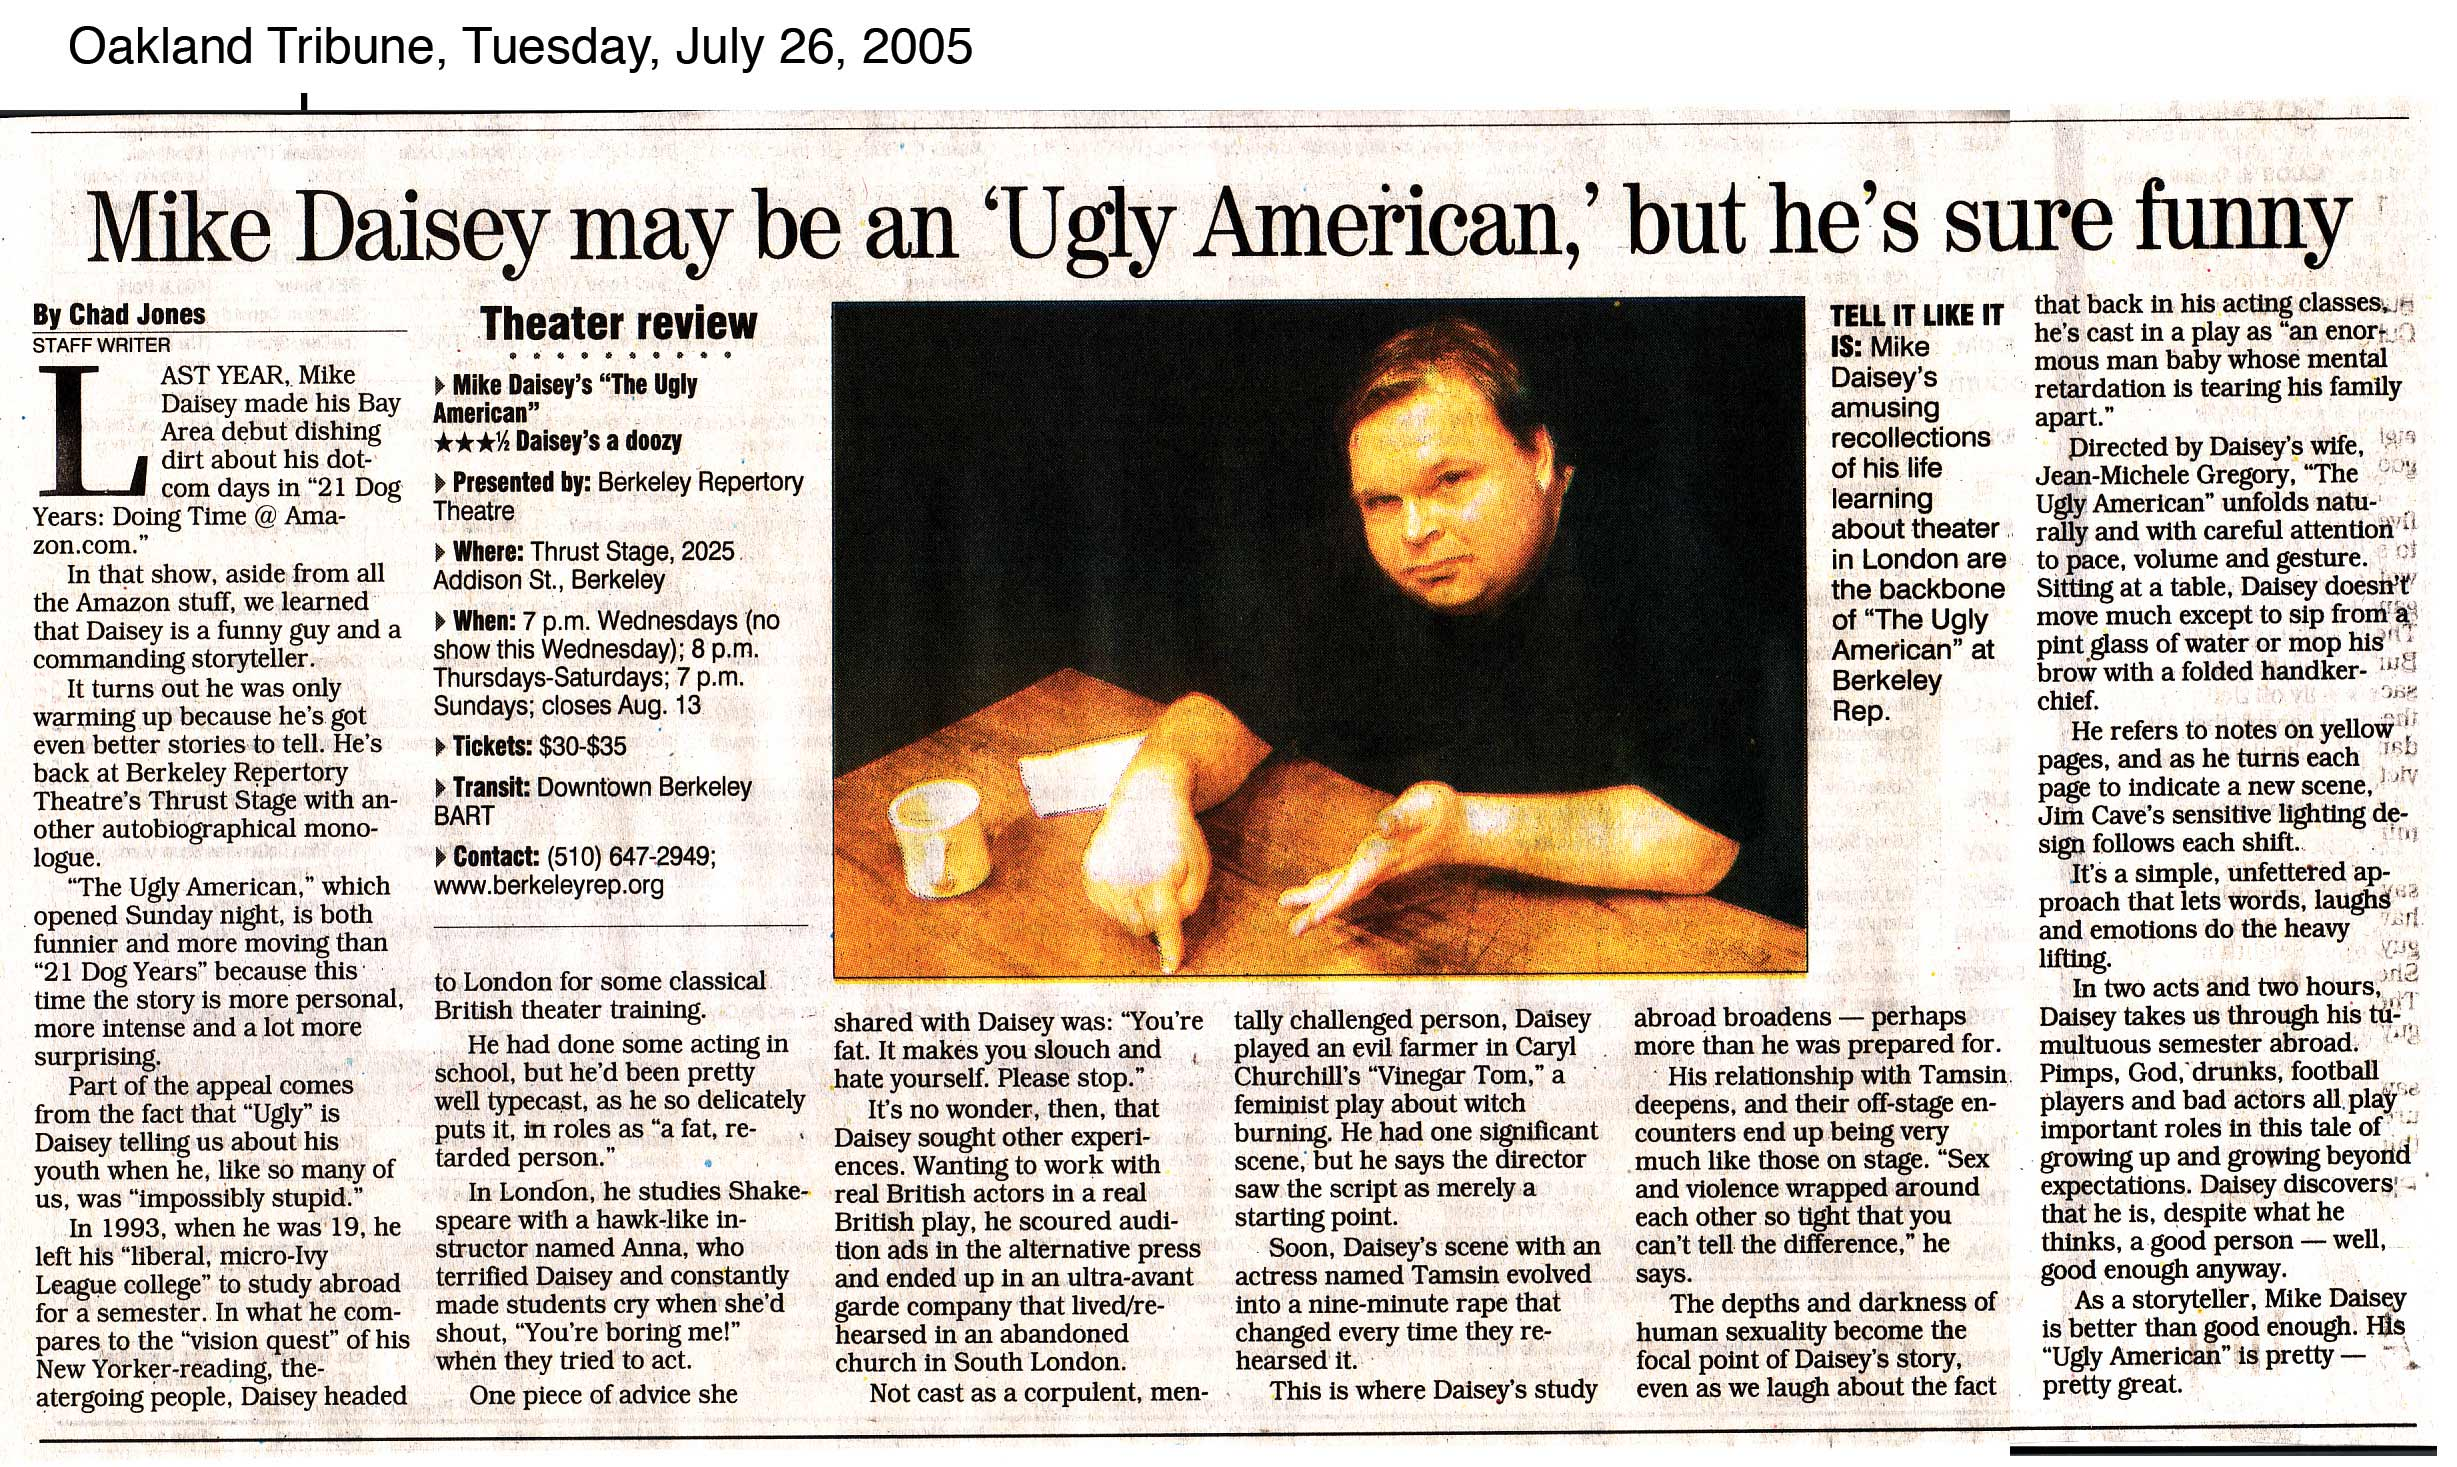 mike daisey monologues mike s essay in the stranger about the ugly american the east bay express review the charleston city paper review